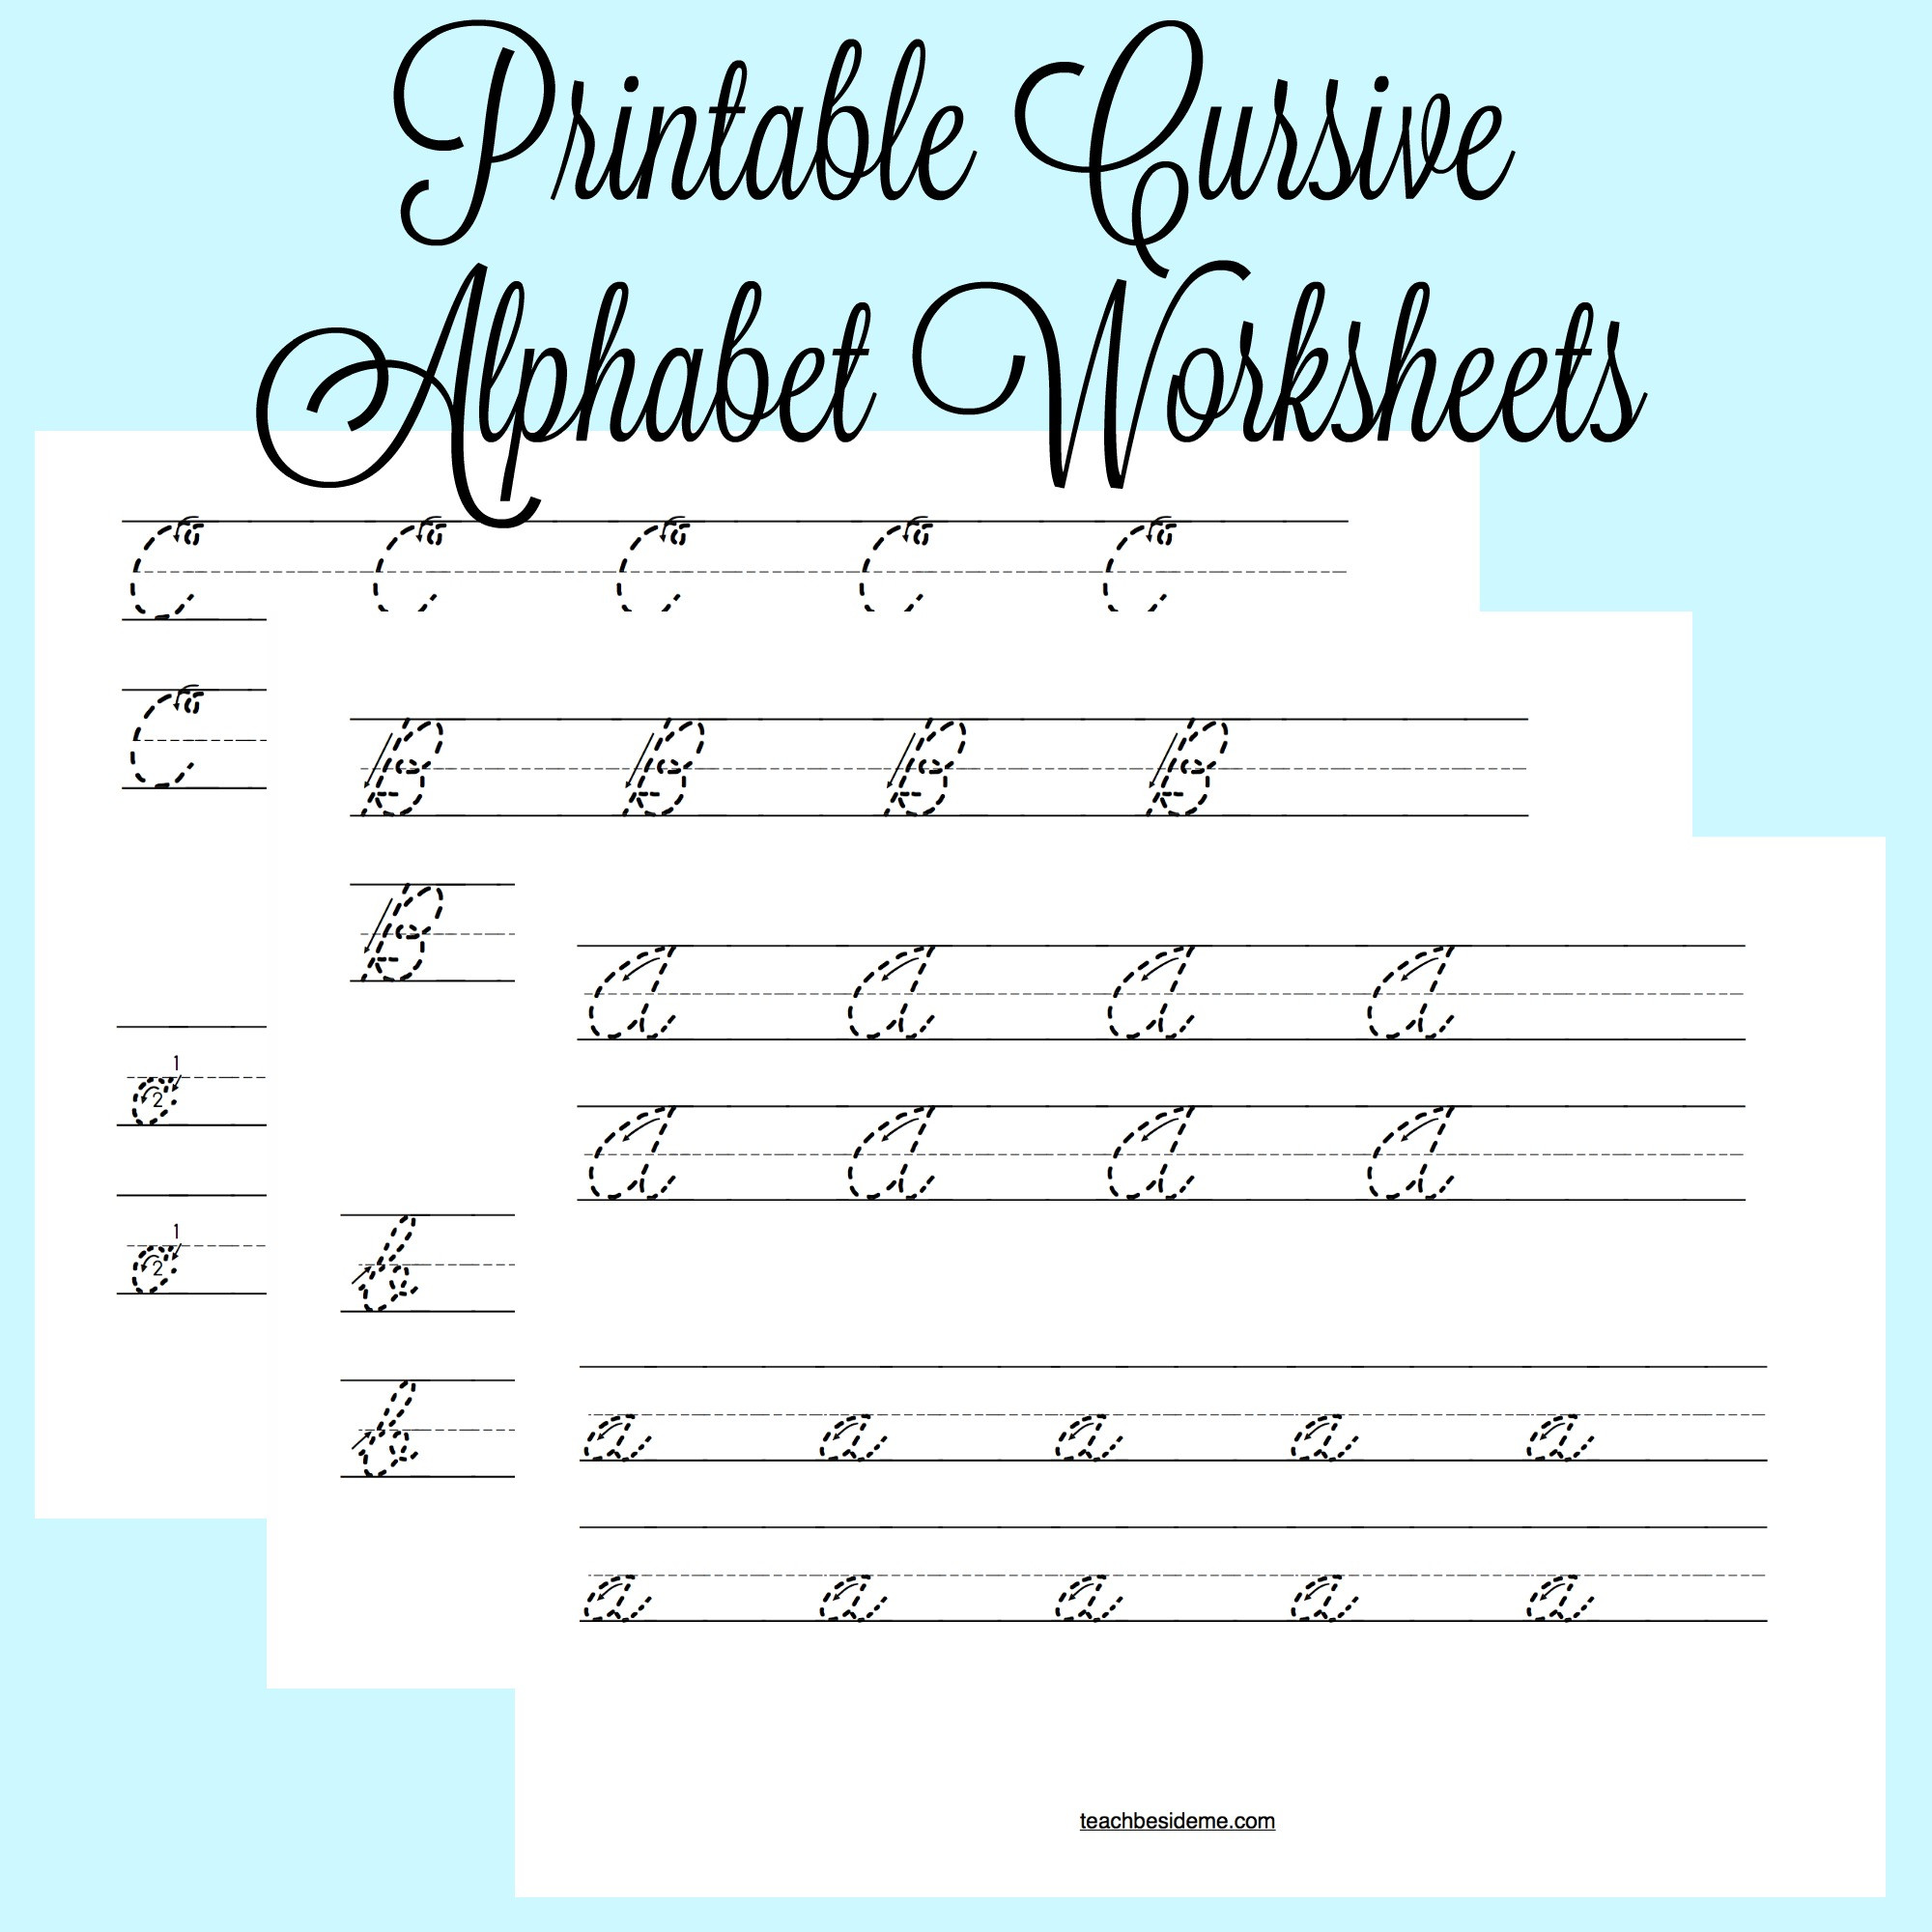 Printable Cursive Alphabet Chart Math Worksheet Printable Cursive Alphabet Practice Sheets